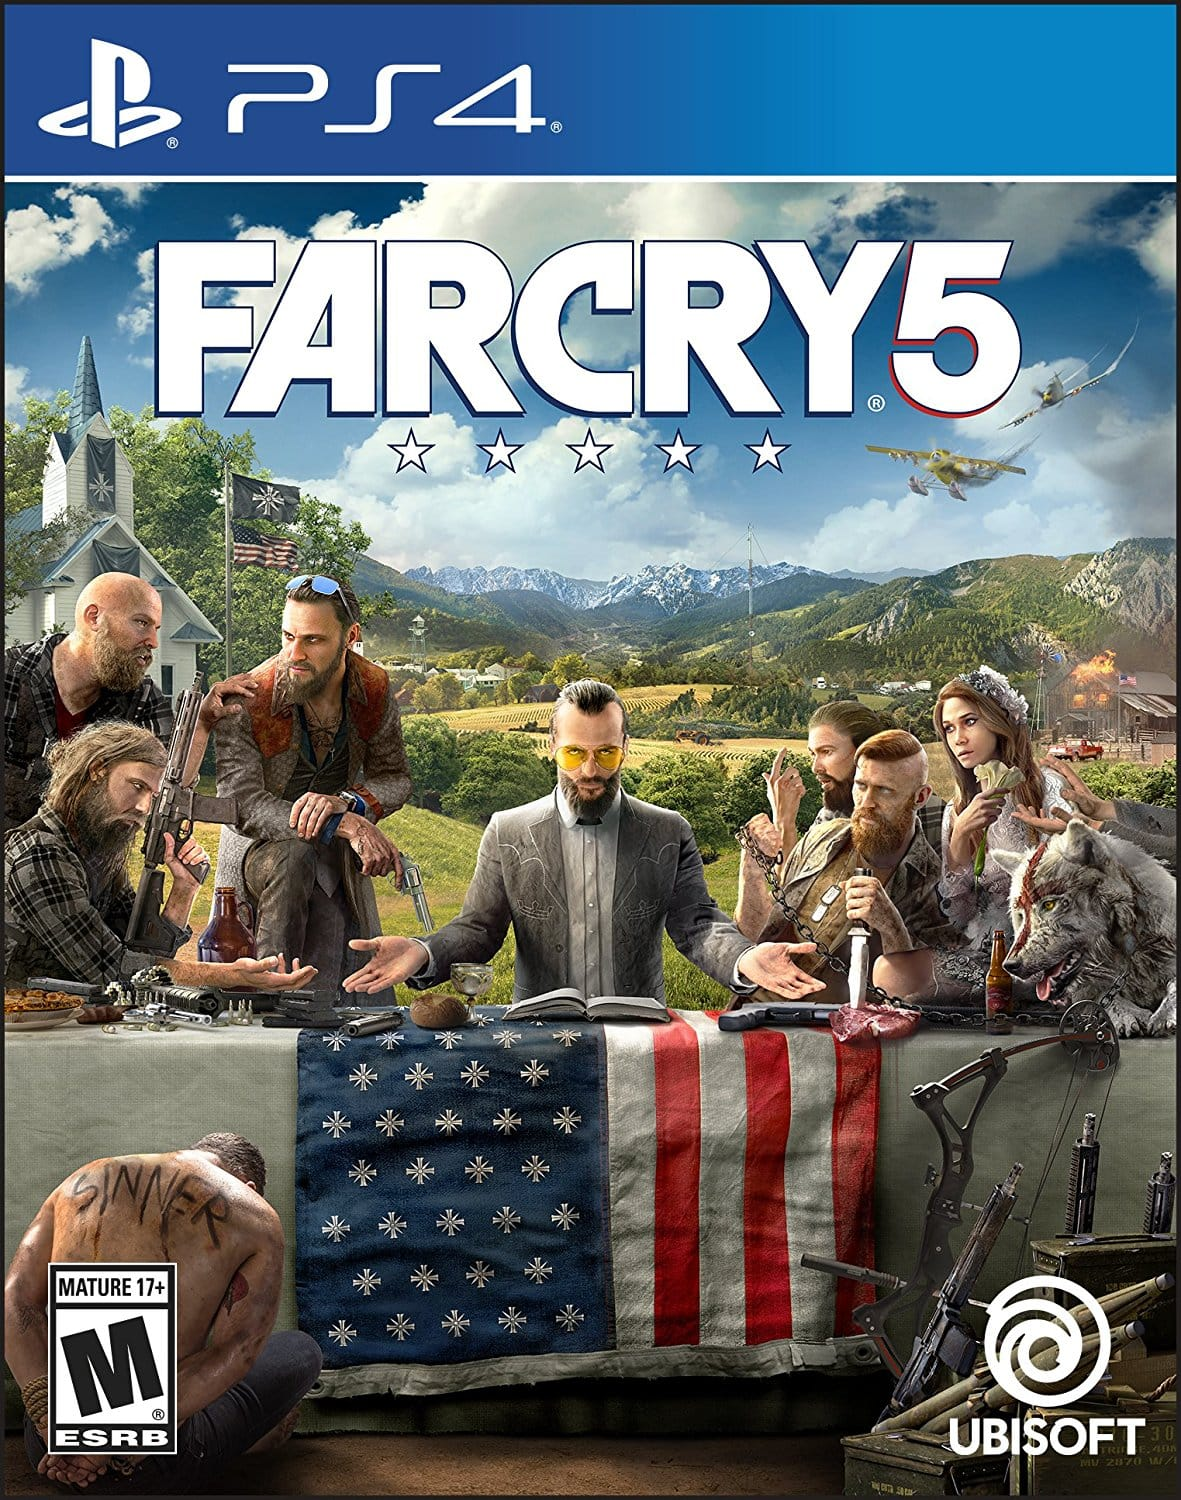 BOGO Select Videos Games: Far Cry 5, Assassin's Creed Origins, South Park: The Fractured but Whole, Tom Clancy's Rainbow Six Siege or Mario + Rabbids Kingdom Battle @Target 6/3-6/9